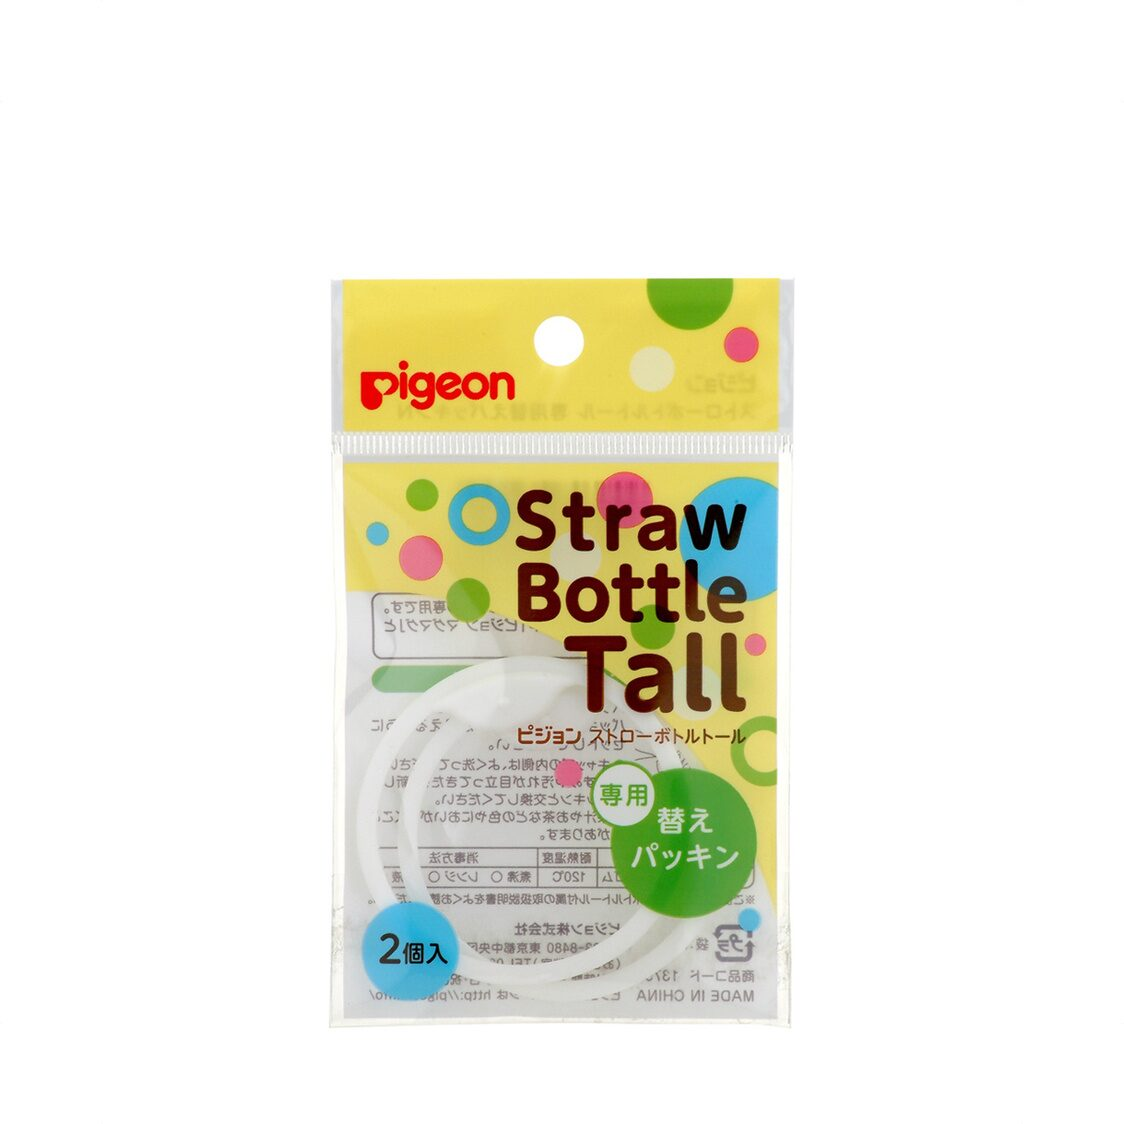 Straw Bottle Tall Spare Parts - Gasket